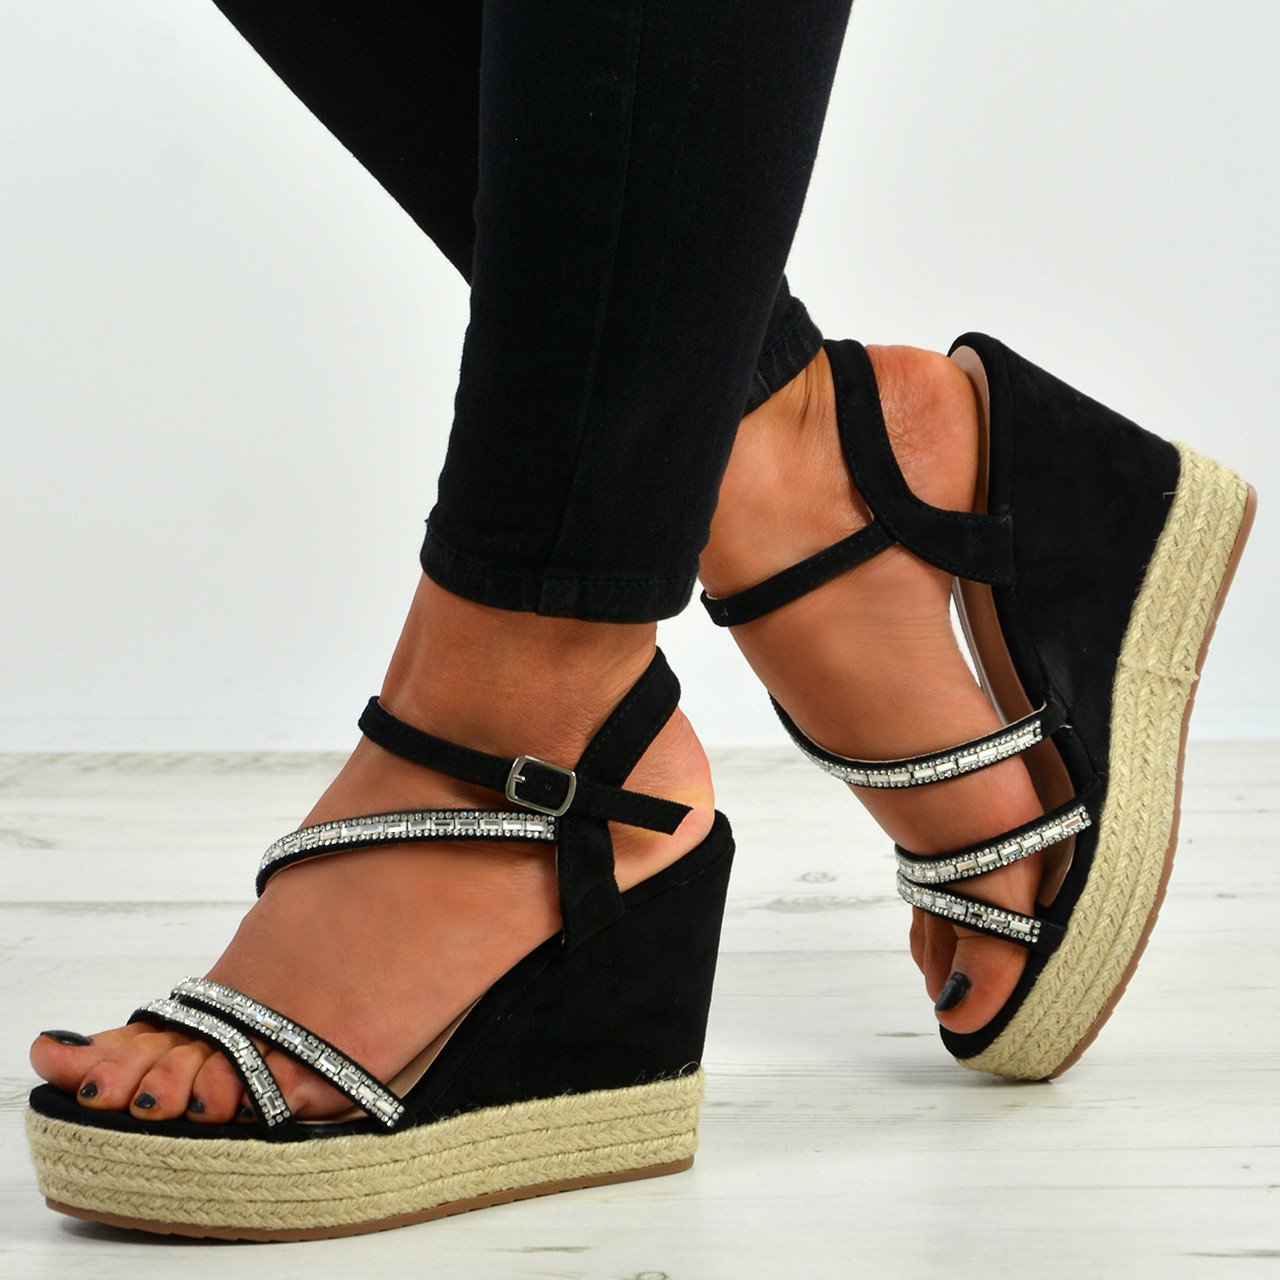 cf05a78f472 New Womens Ladies Ankle Strap Studded Espadrille Wedge Platform Sandals  Shoes